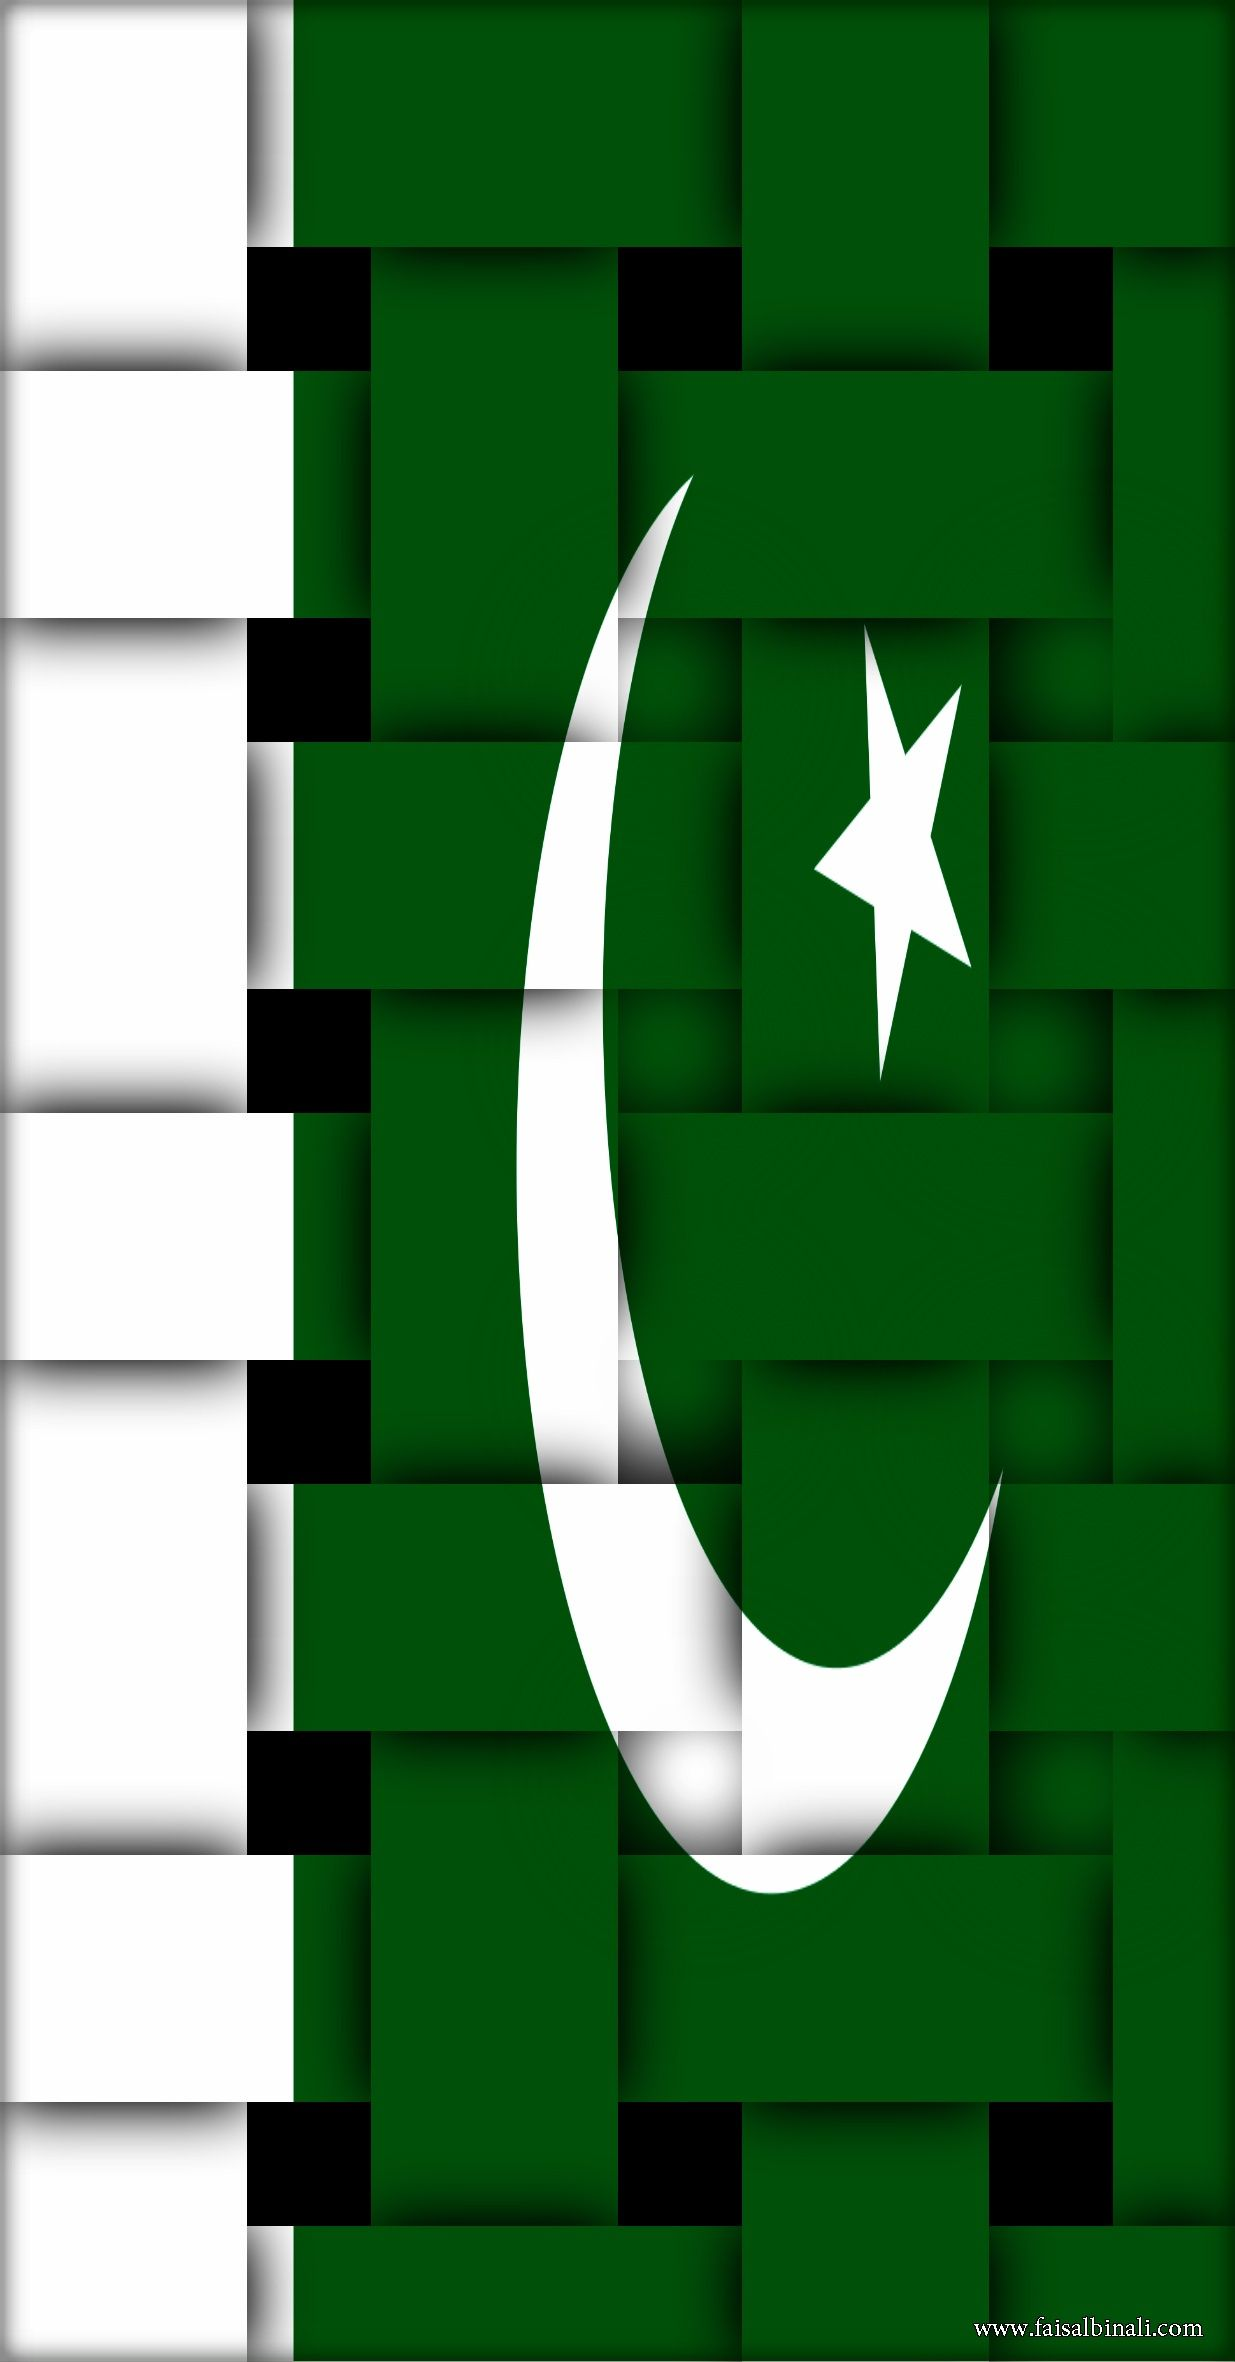 Pakistan Flag Hd Wallpapers For Smartphones And Tablets Pakistan Flag Hd Pakistan Flag Images Pakistan Flag